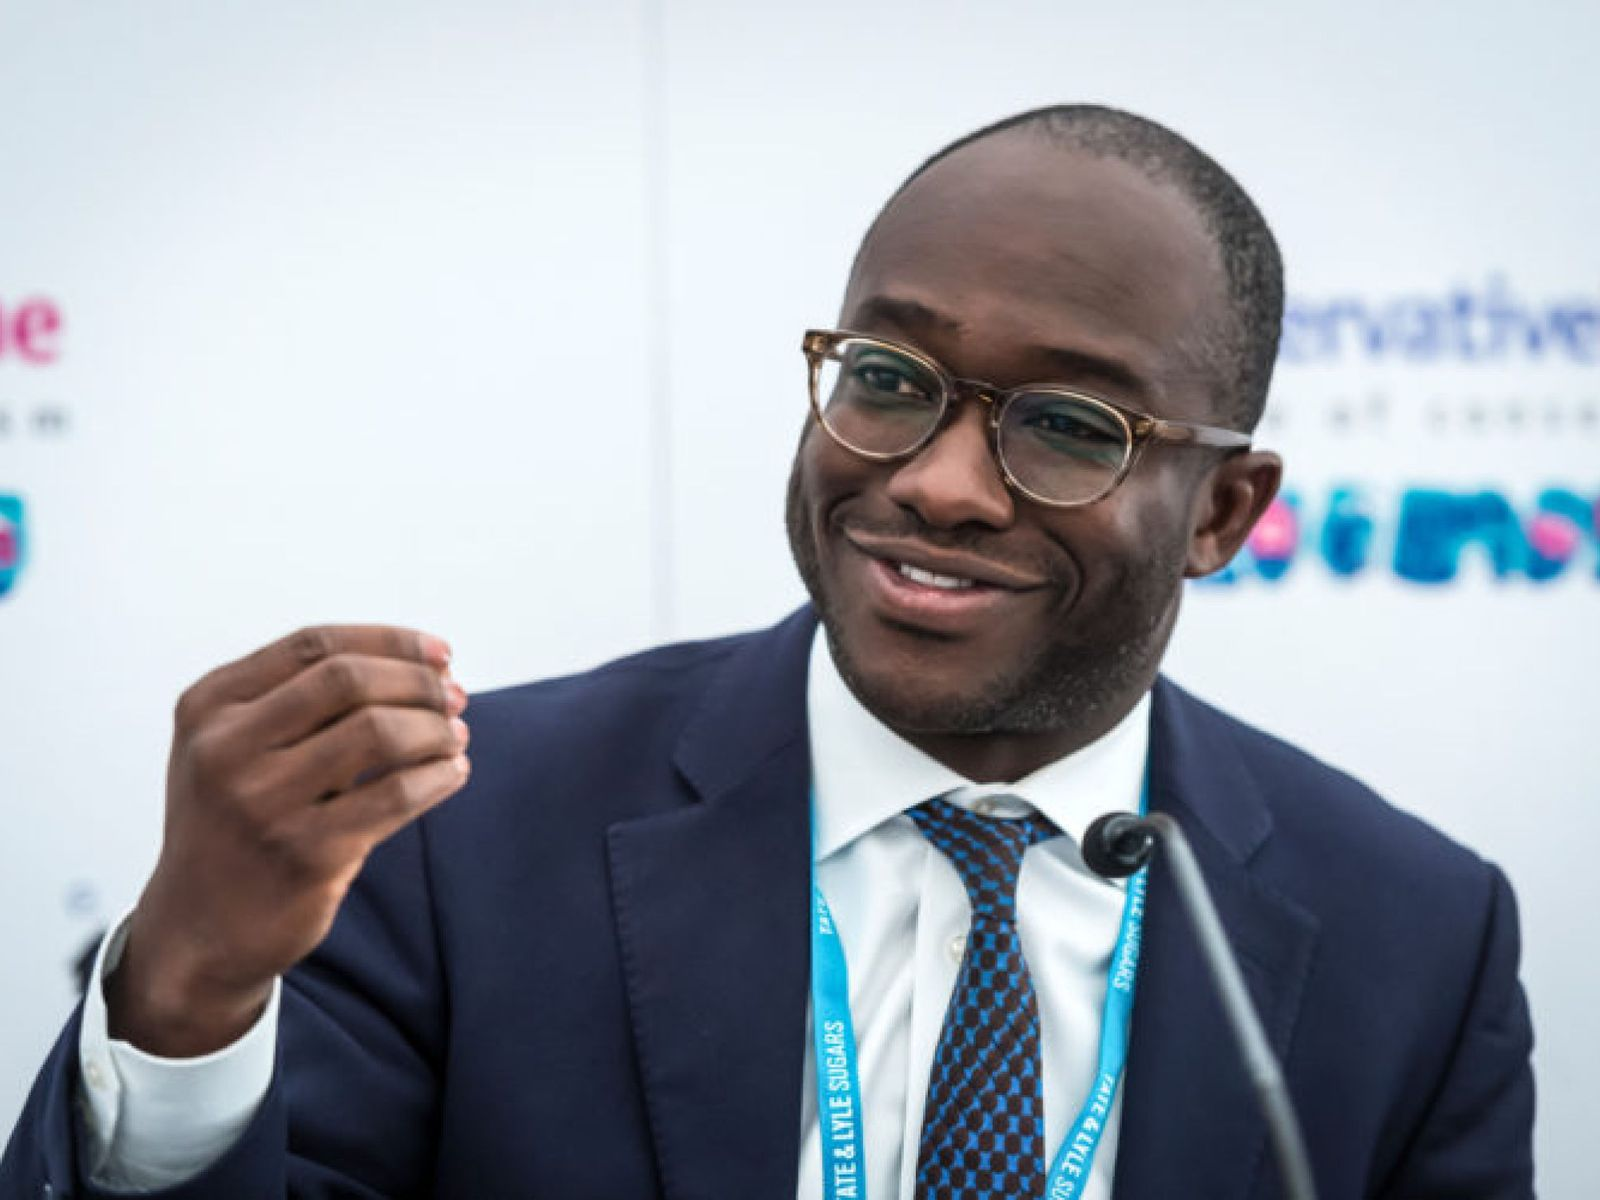 Universities Minister Sam Gyimah